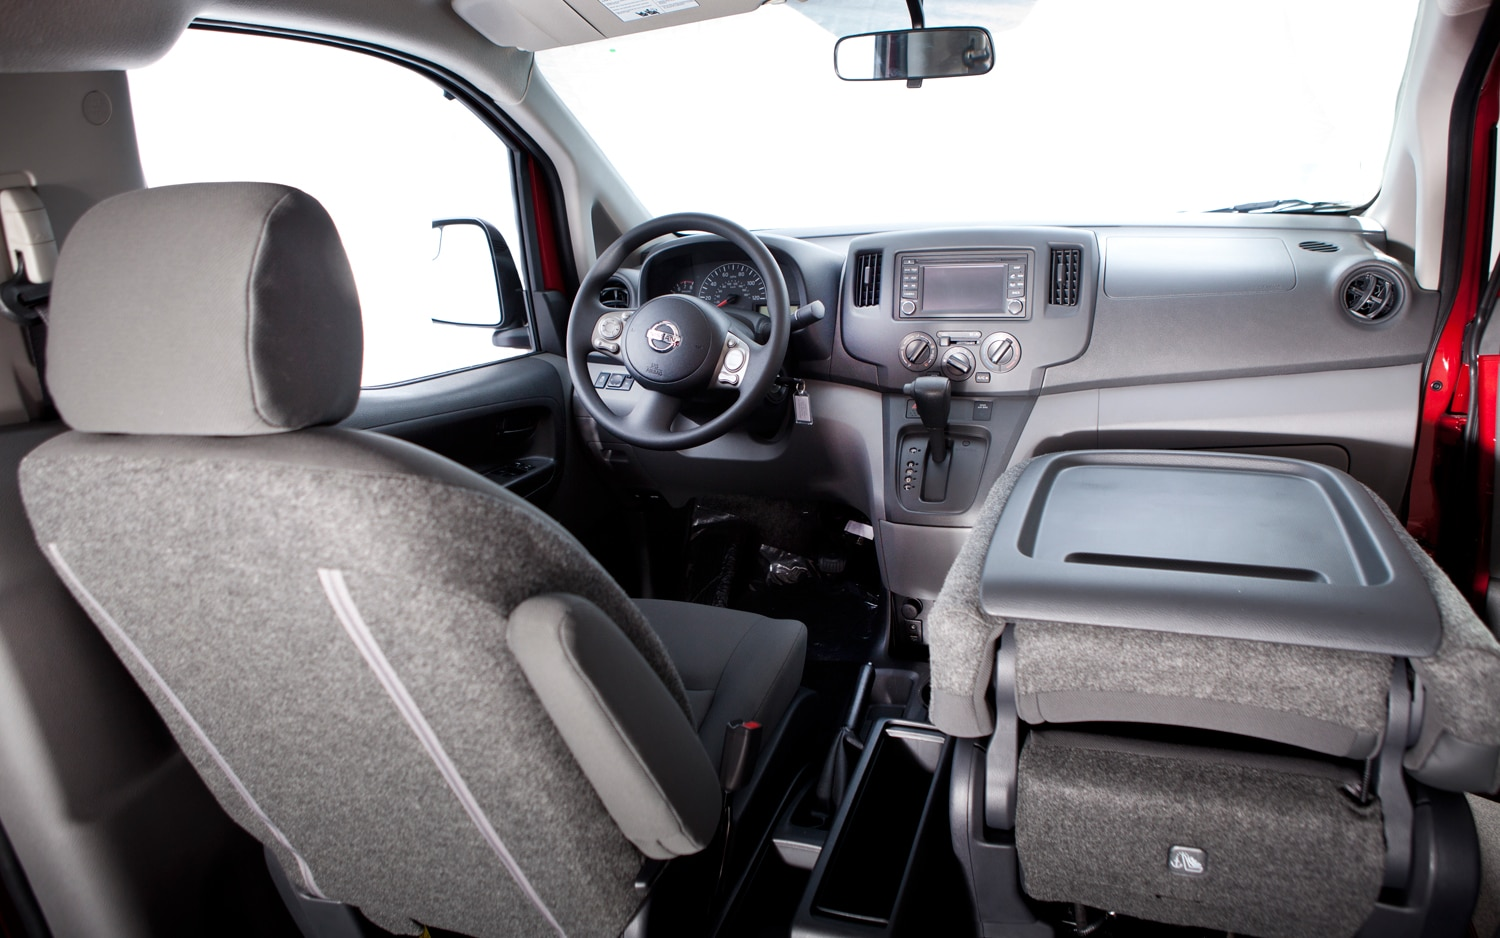 2013 Nissan Nv200 First Look Automobile Magazine